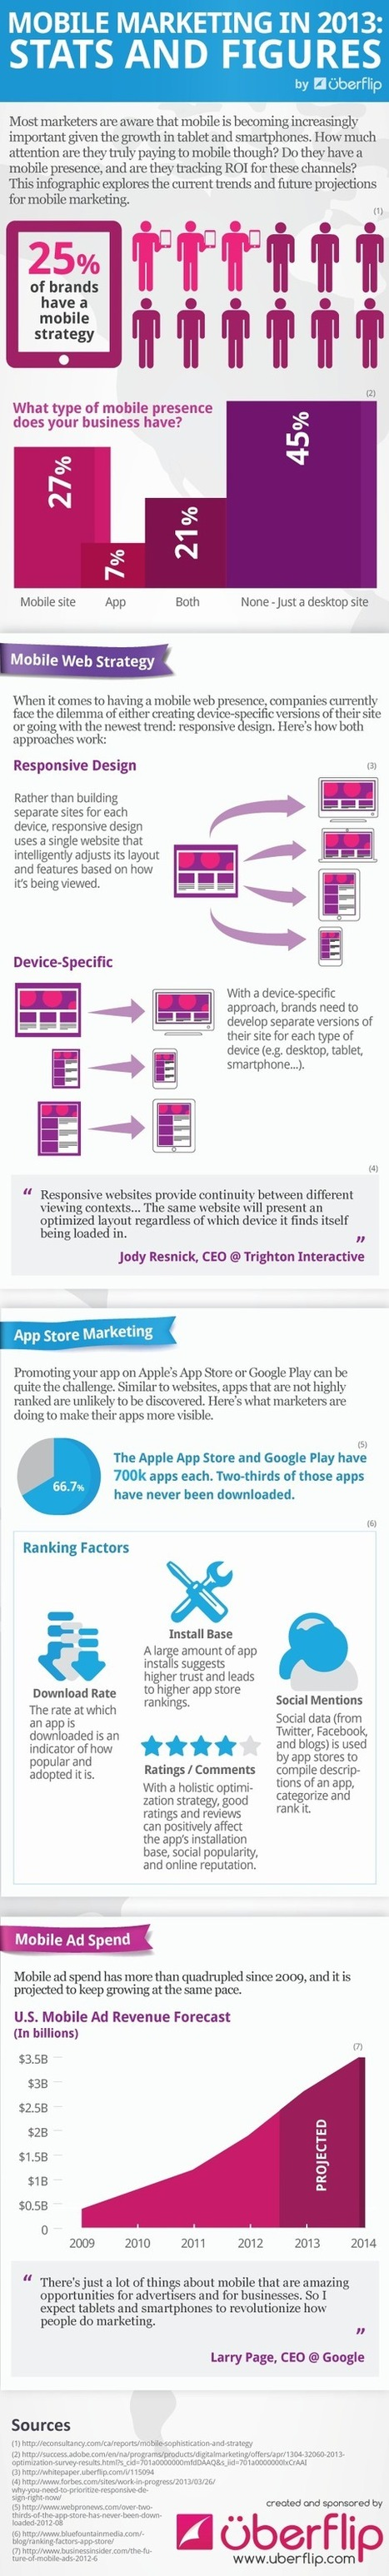 Infographic: 2013 Mobile Marketing Stats and Figures - Marketing Technology Blog | Psicología desde otra onda | Scoop.it